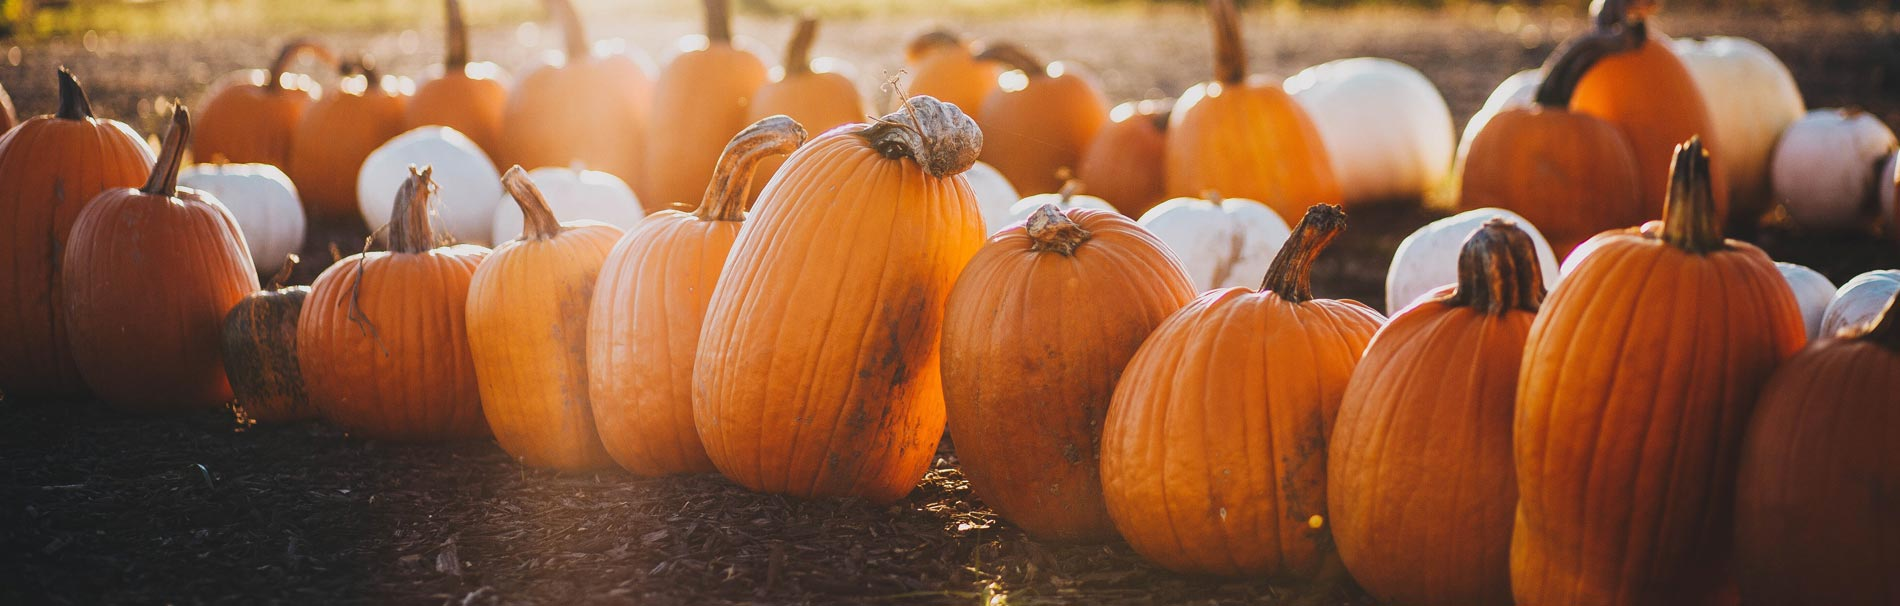 11 Things We Love About Fall - Carmel Retirement